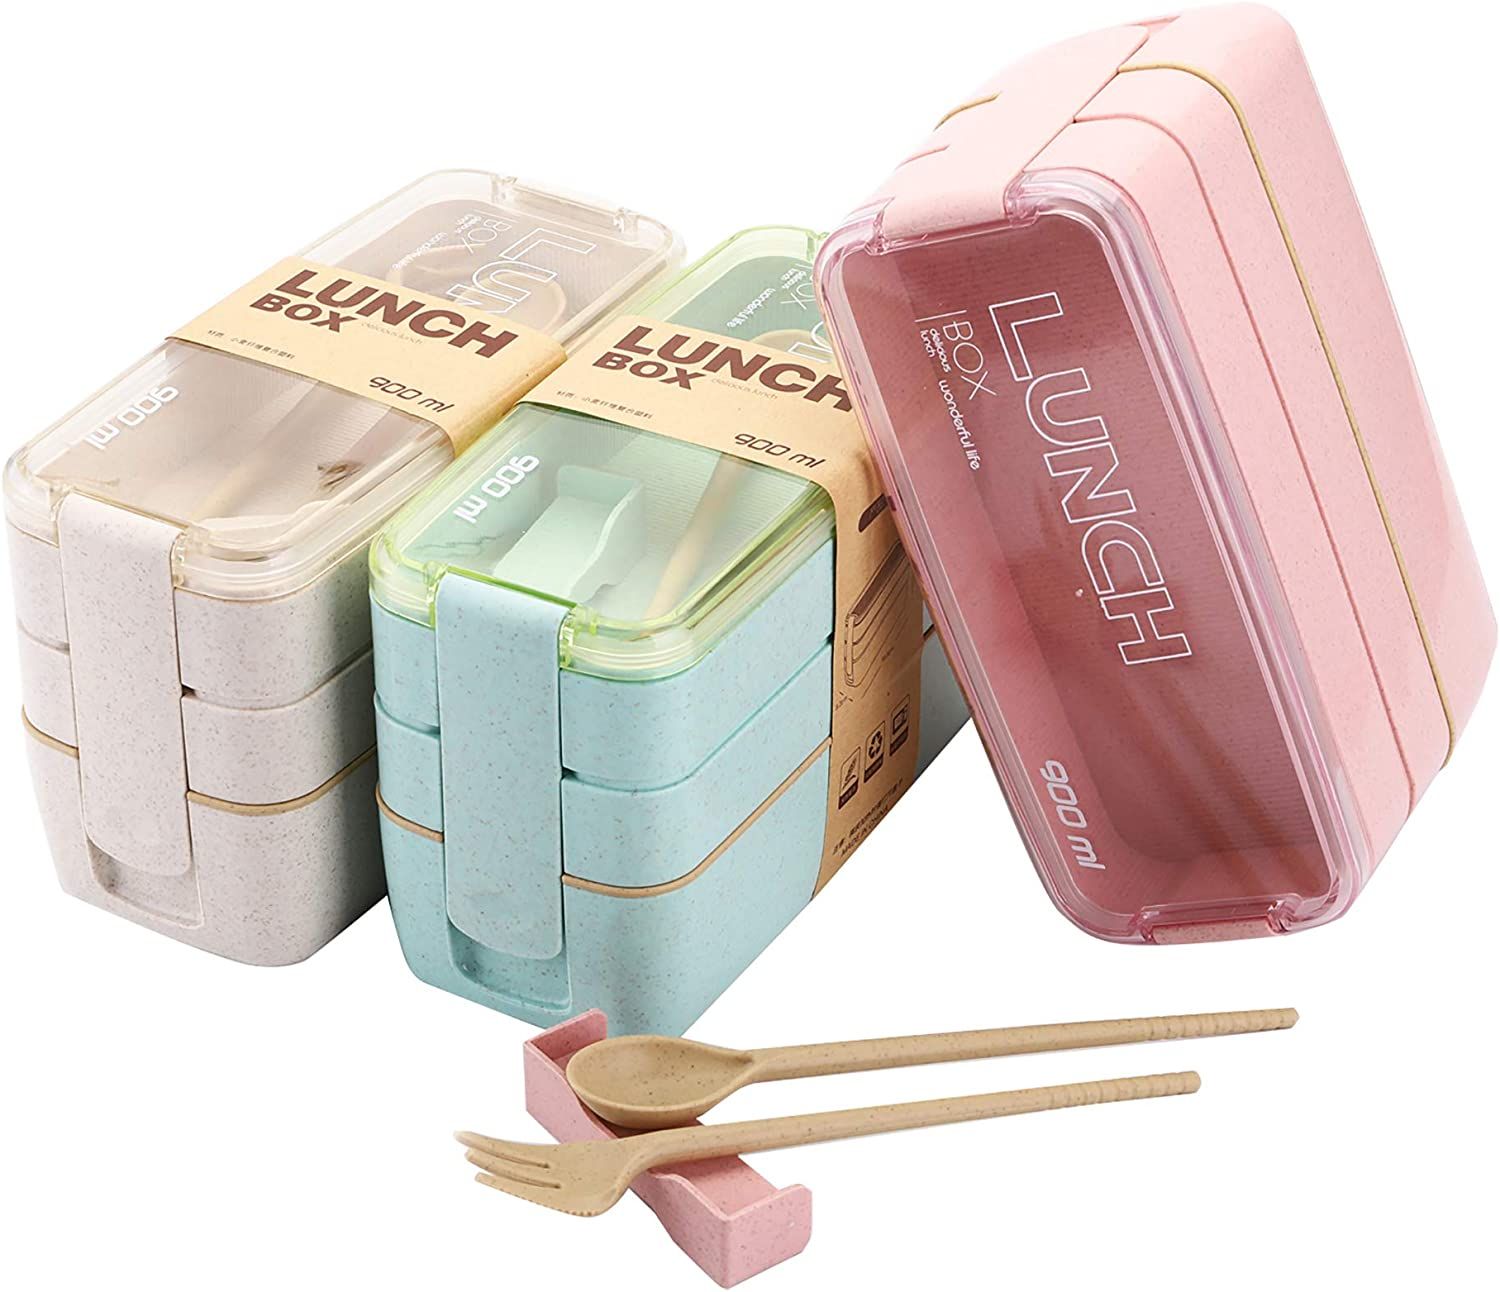 Yesland 3 Pack Bento Box, Wheat Straw 3-In-1 Compartment Japanese Lunch Box with Divider, All-in-One Stackable Lunch Containers for Kids and Adults (Beige, Pink & Green)